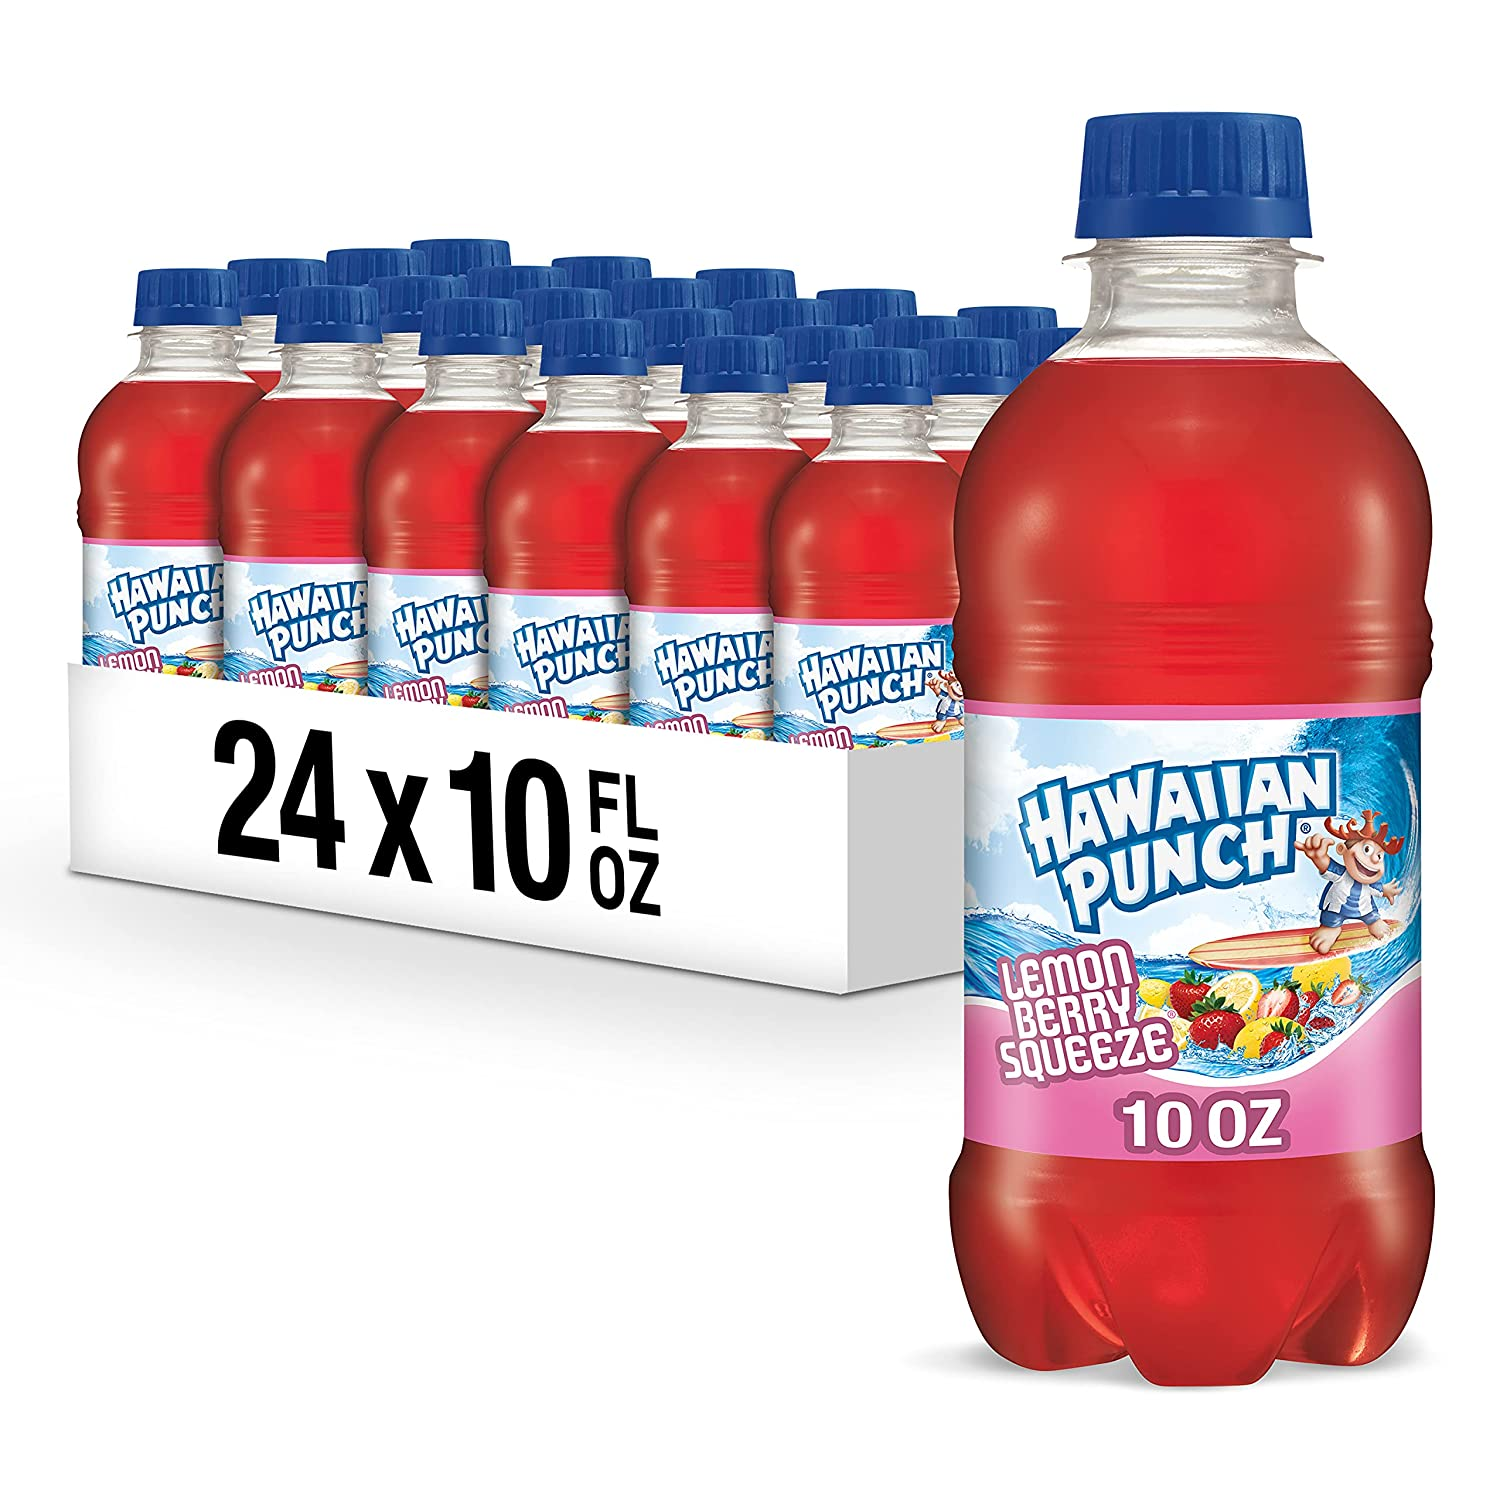 Hawaiian Punch Lemon Berry Squeeze 10 Tucson Mall bottles oz 24 Directly managed store fl Pack of